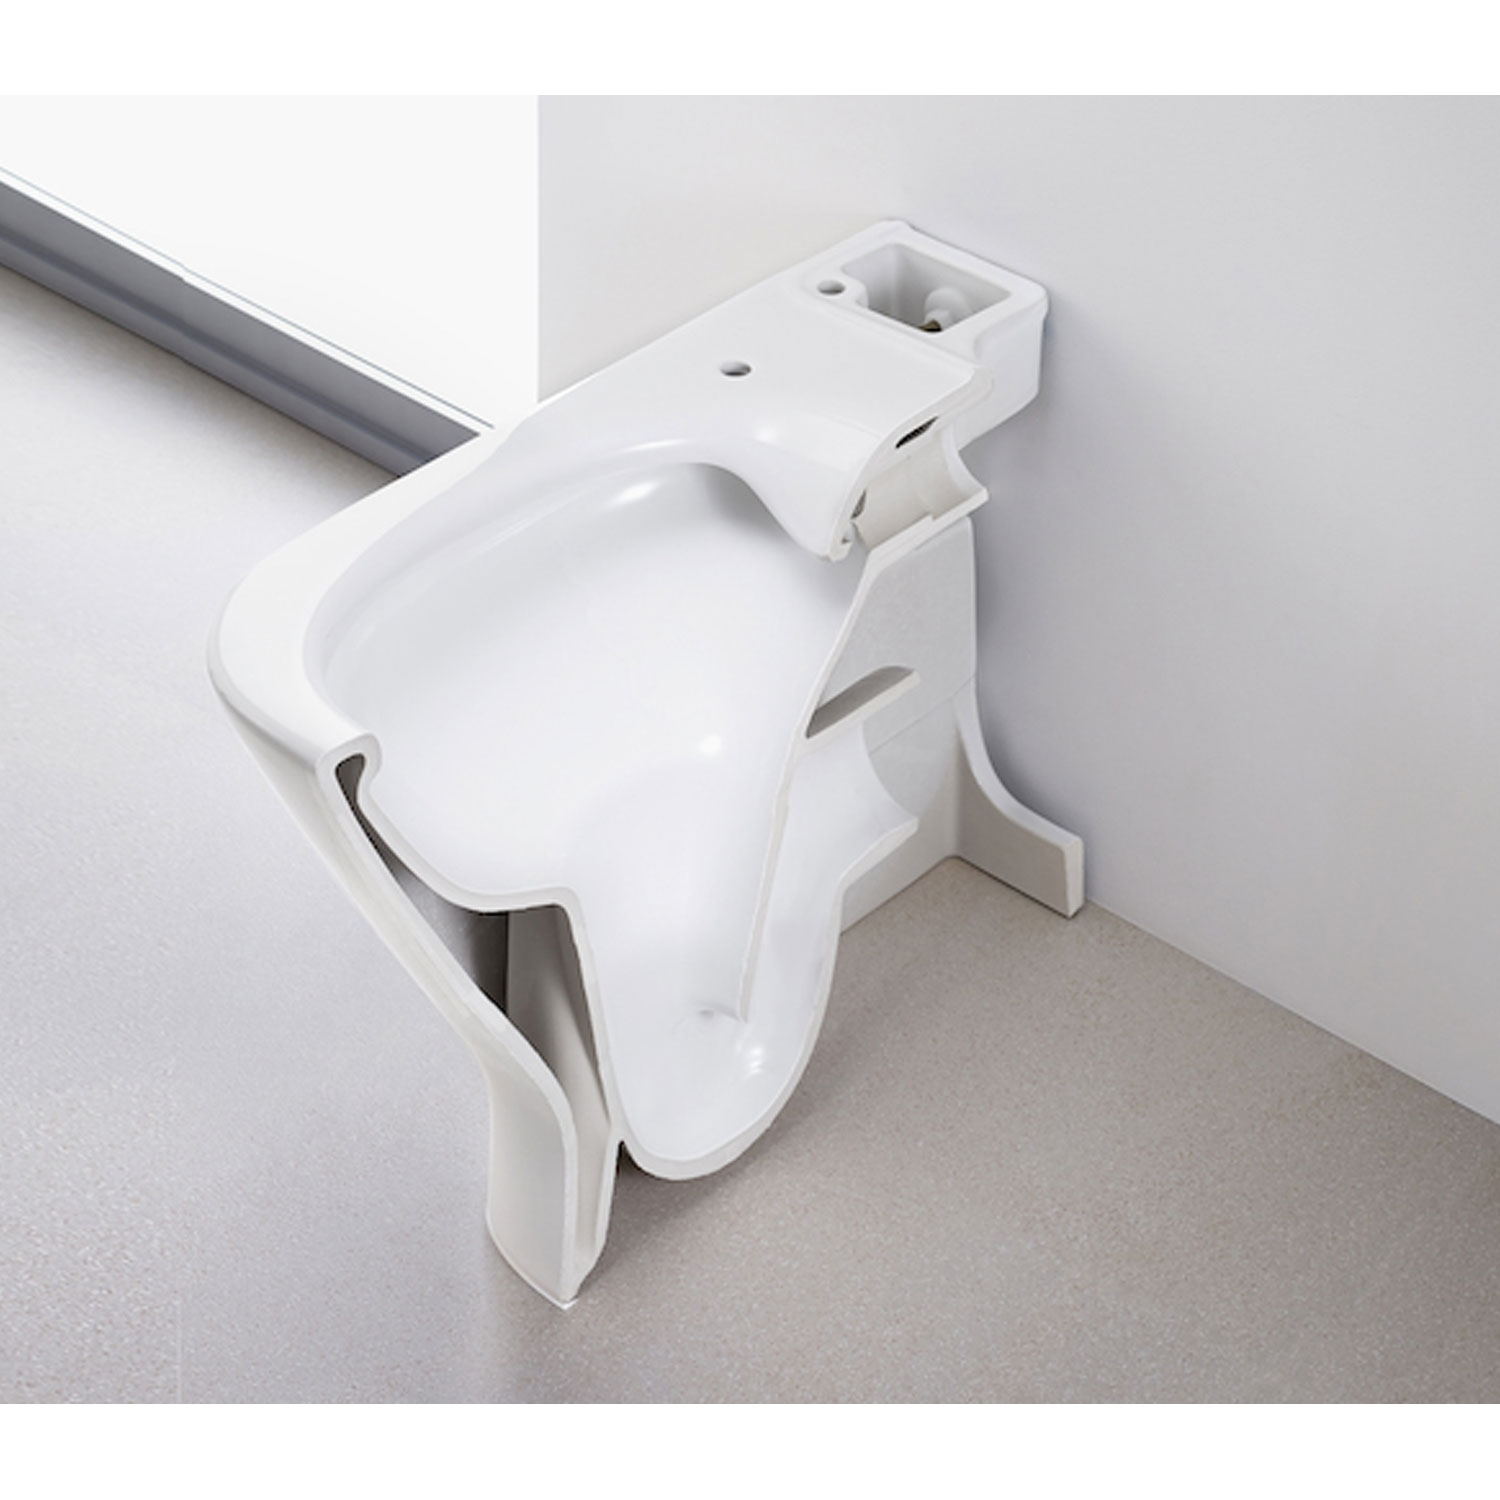 Roca The Gap Cleanrim Close Coupled Toilet with Dual Outlet Push Button Cistern, Soft Close Seat-2